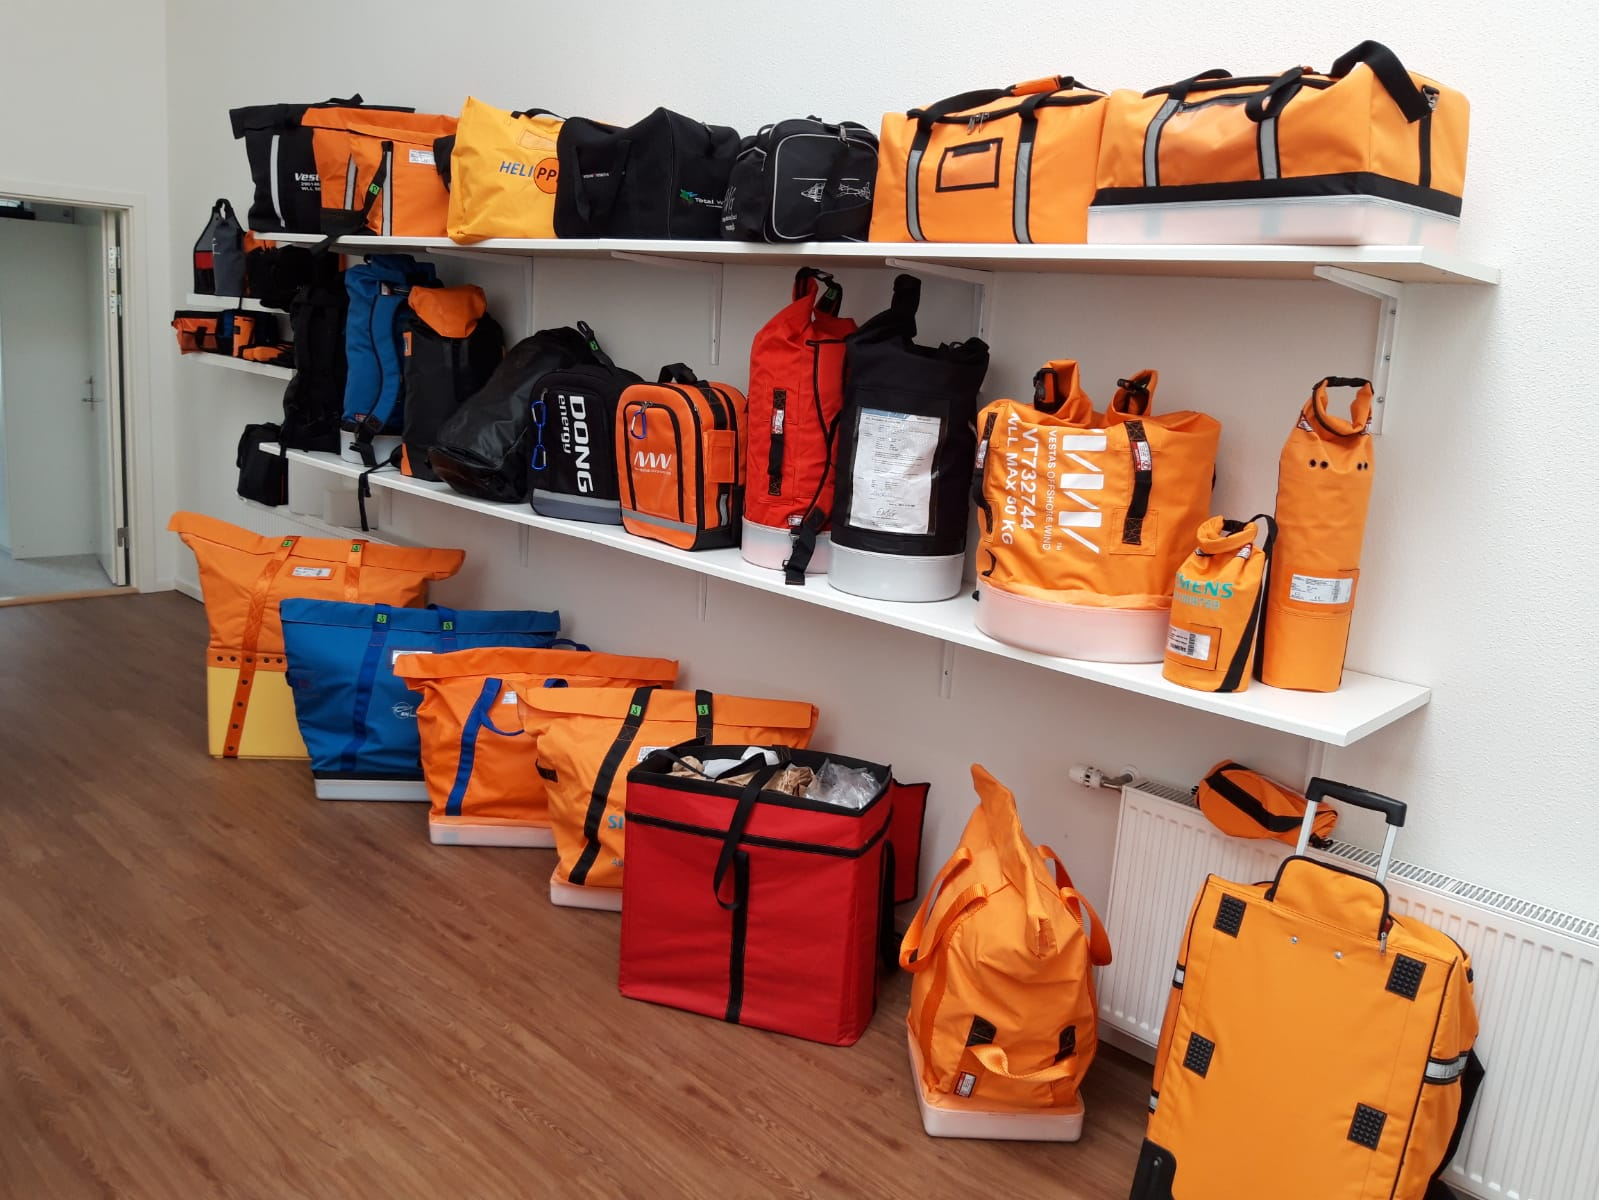 EMG Lifiting Bags Hijsspecialist